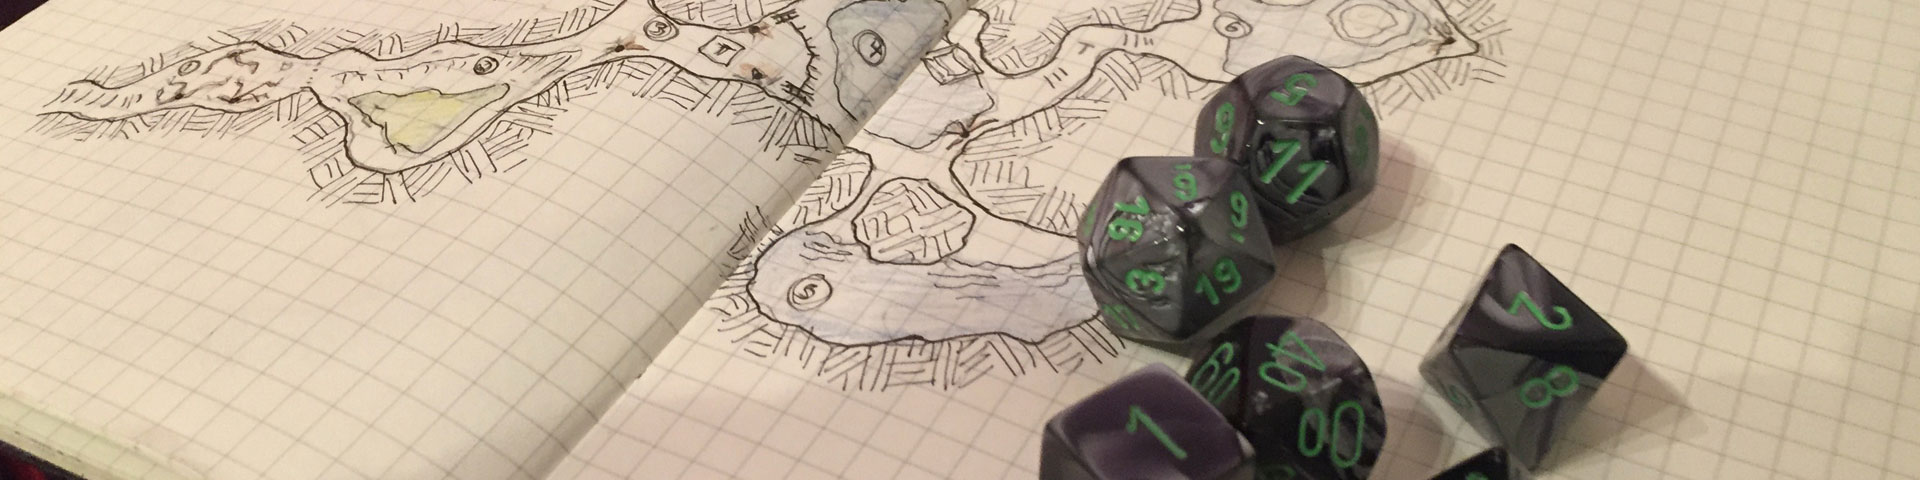 Green and grey dice sit atop a hand-drawn dungeon map.